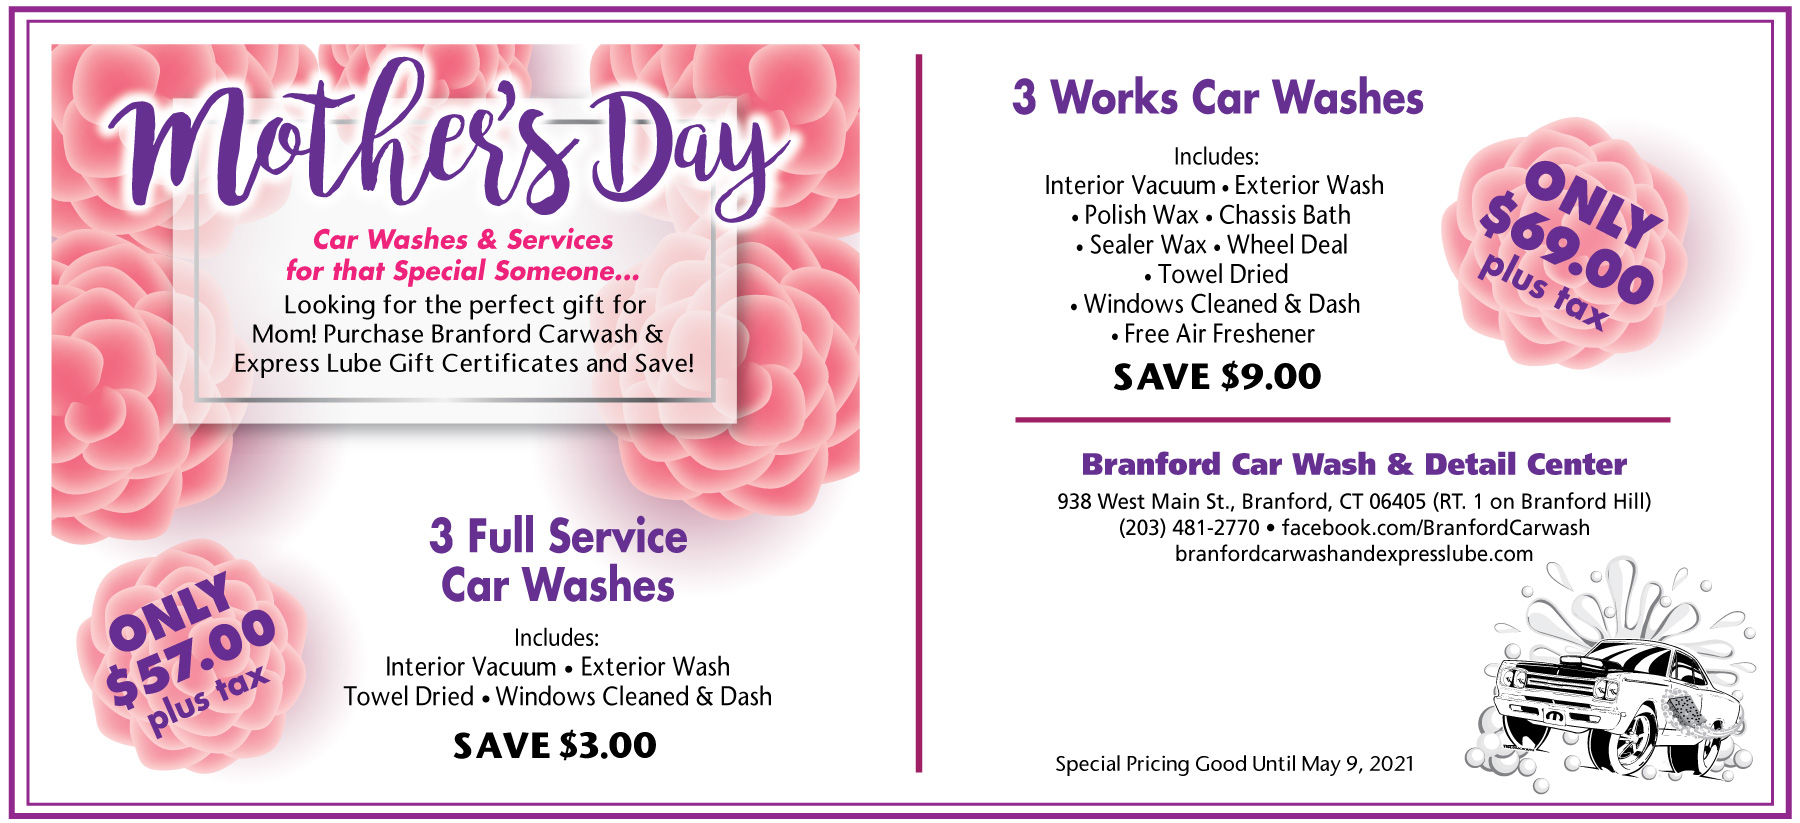 BCW Mothers Day Flyer 2021 1